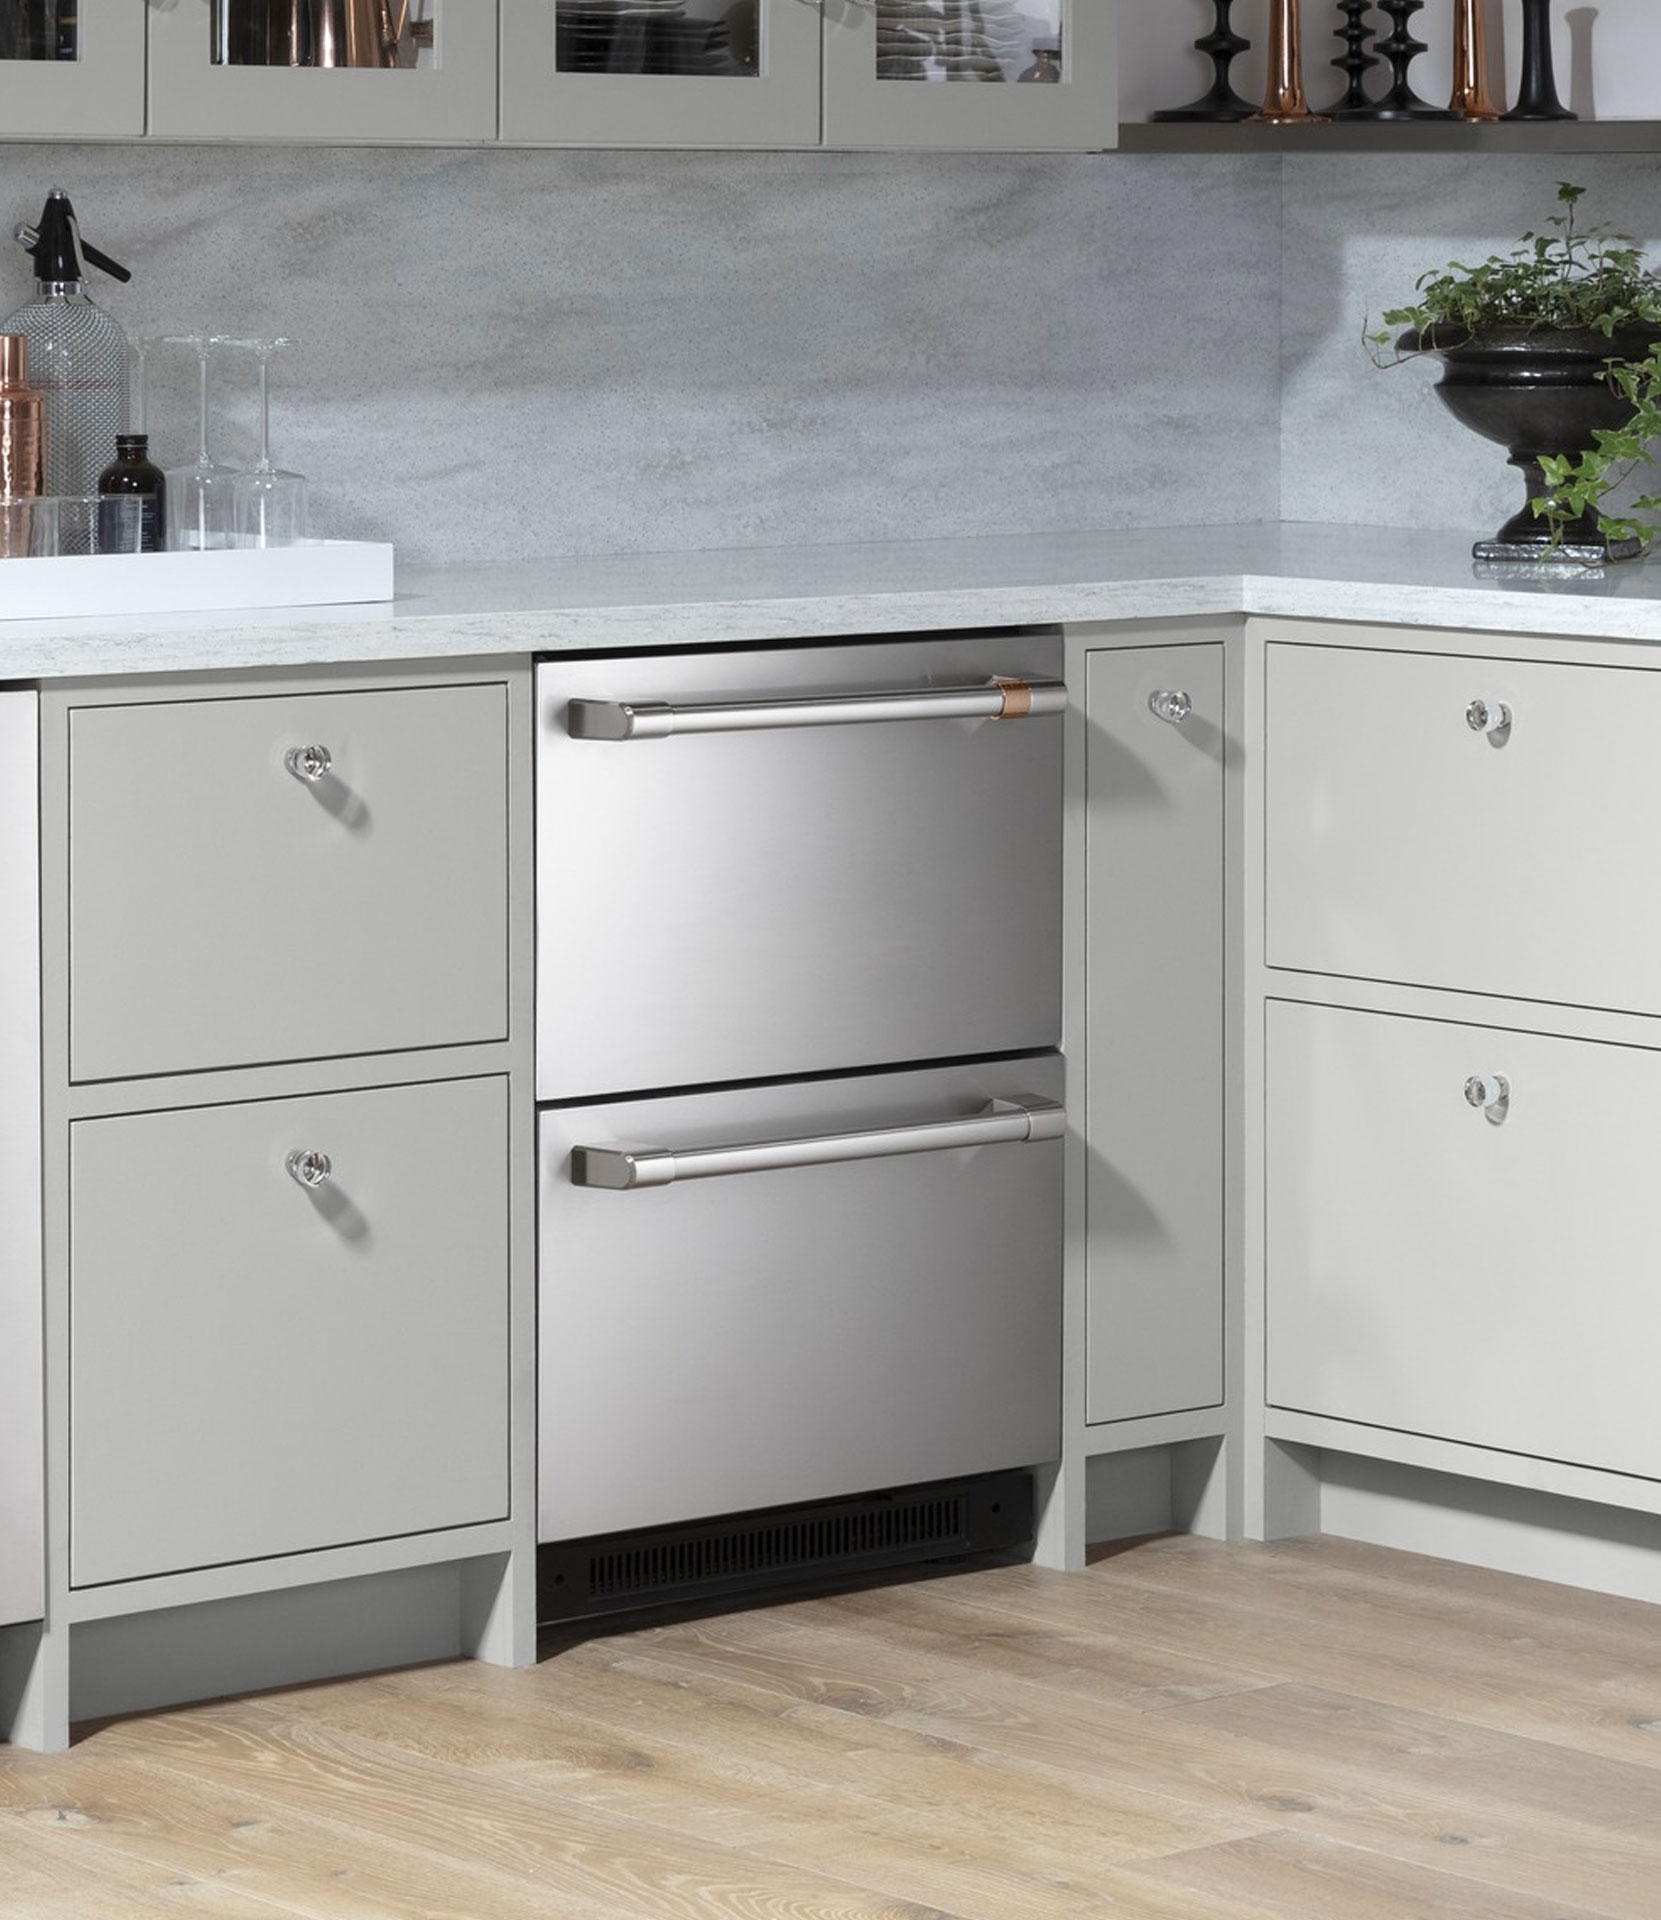 stainless steel double drawer refrigerator with grey cabinets